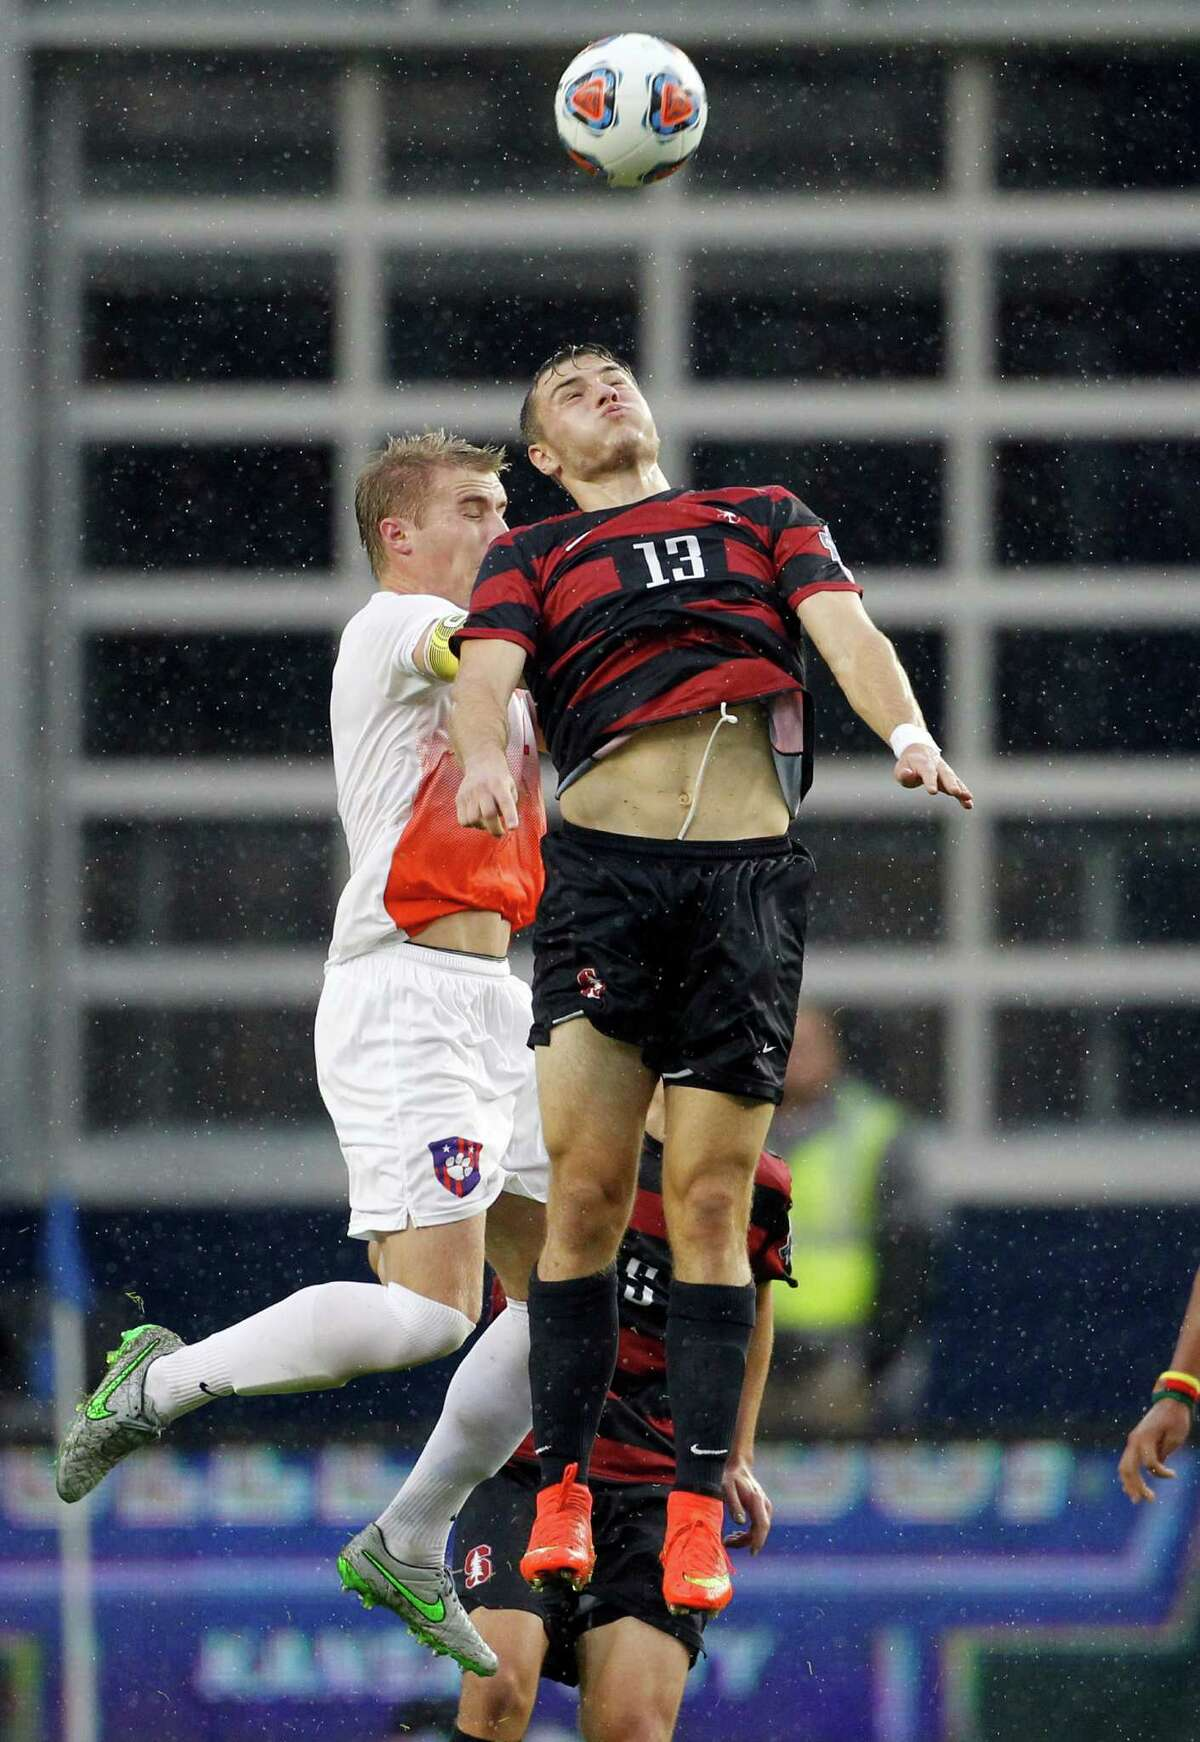 Clemson defender Patrick Bunk-Andersen, left, and Stanford forward Jordan Morris (13) go up for the ball in the first half of an NCAA College Cup championship soccer match, Sunday, Dec. 13, 2015, in Kansas City, Kan. Stanford defeated Clemson 4-0. (AP Photo/Colin E. Braley)